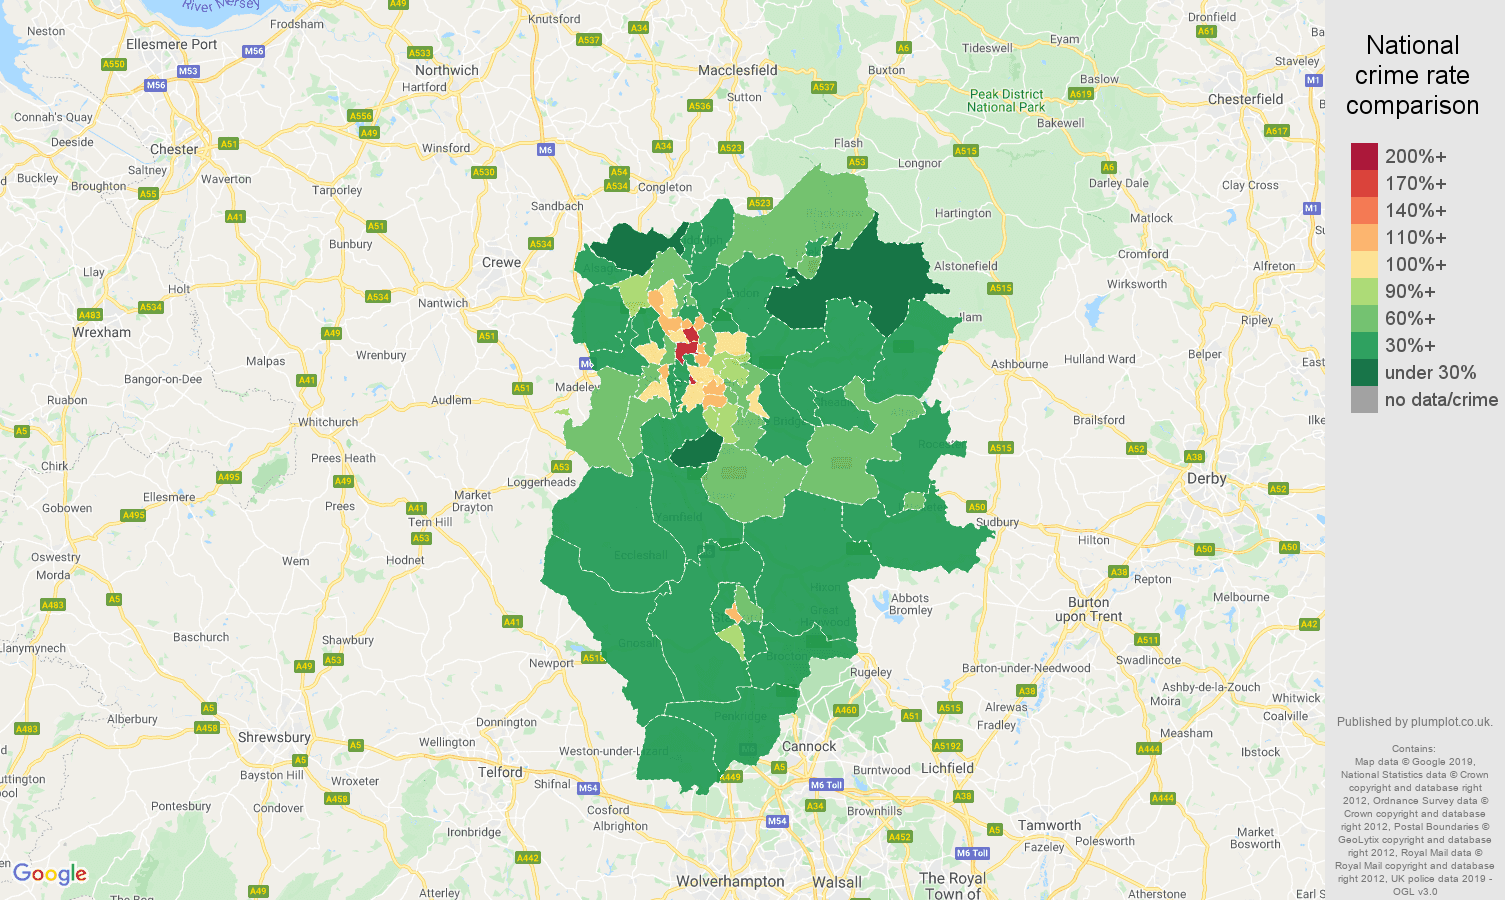 Stoke on Trent other theft crime rate comparison map